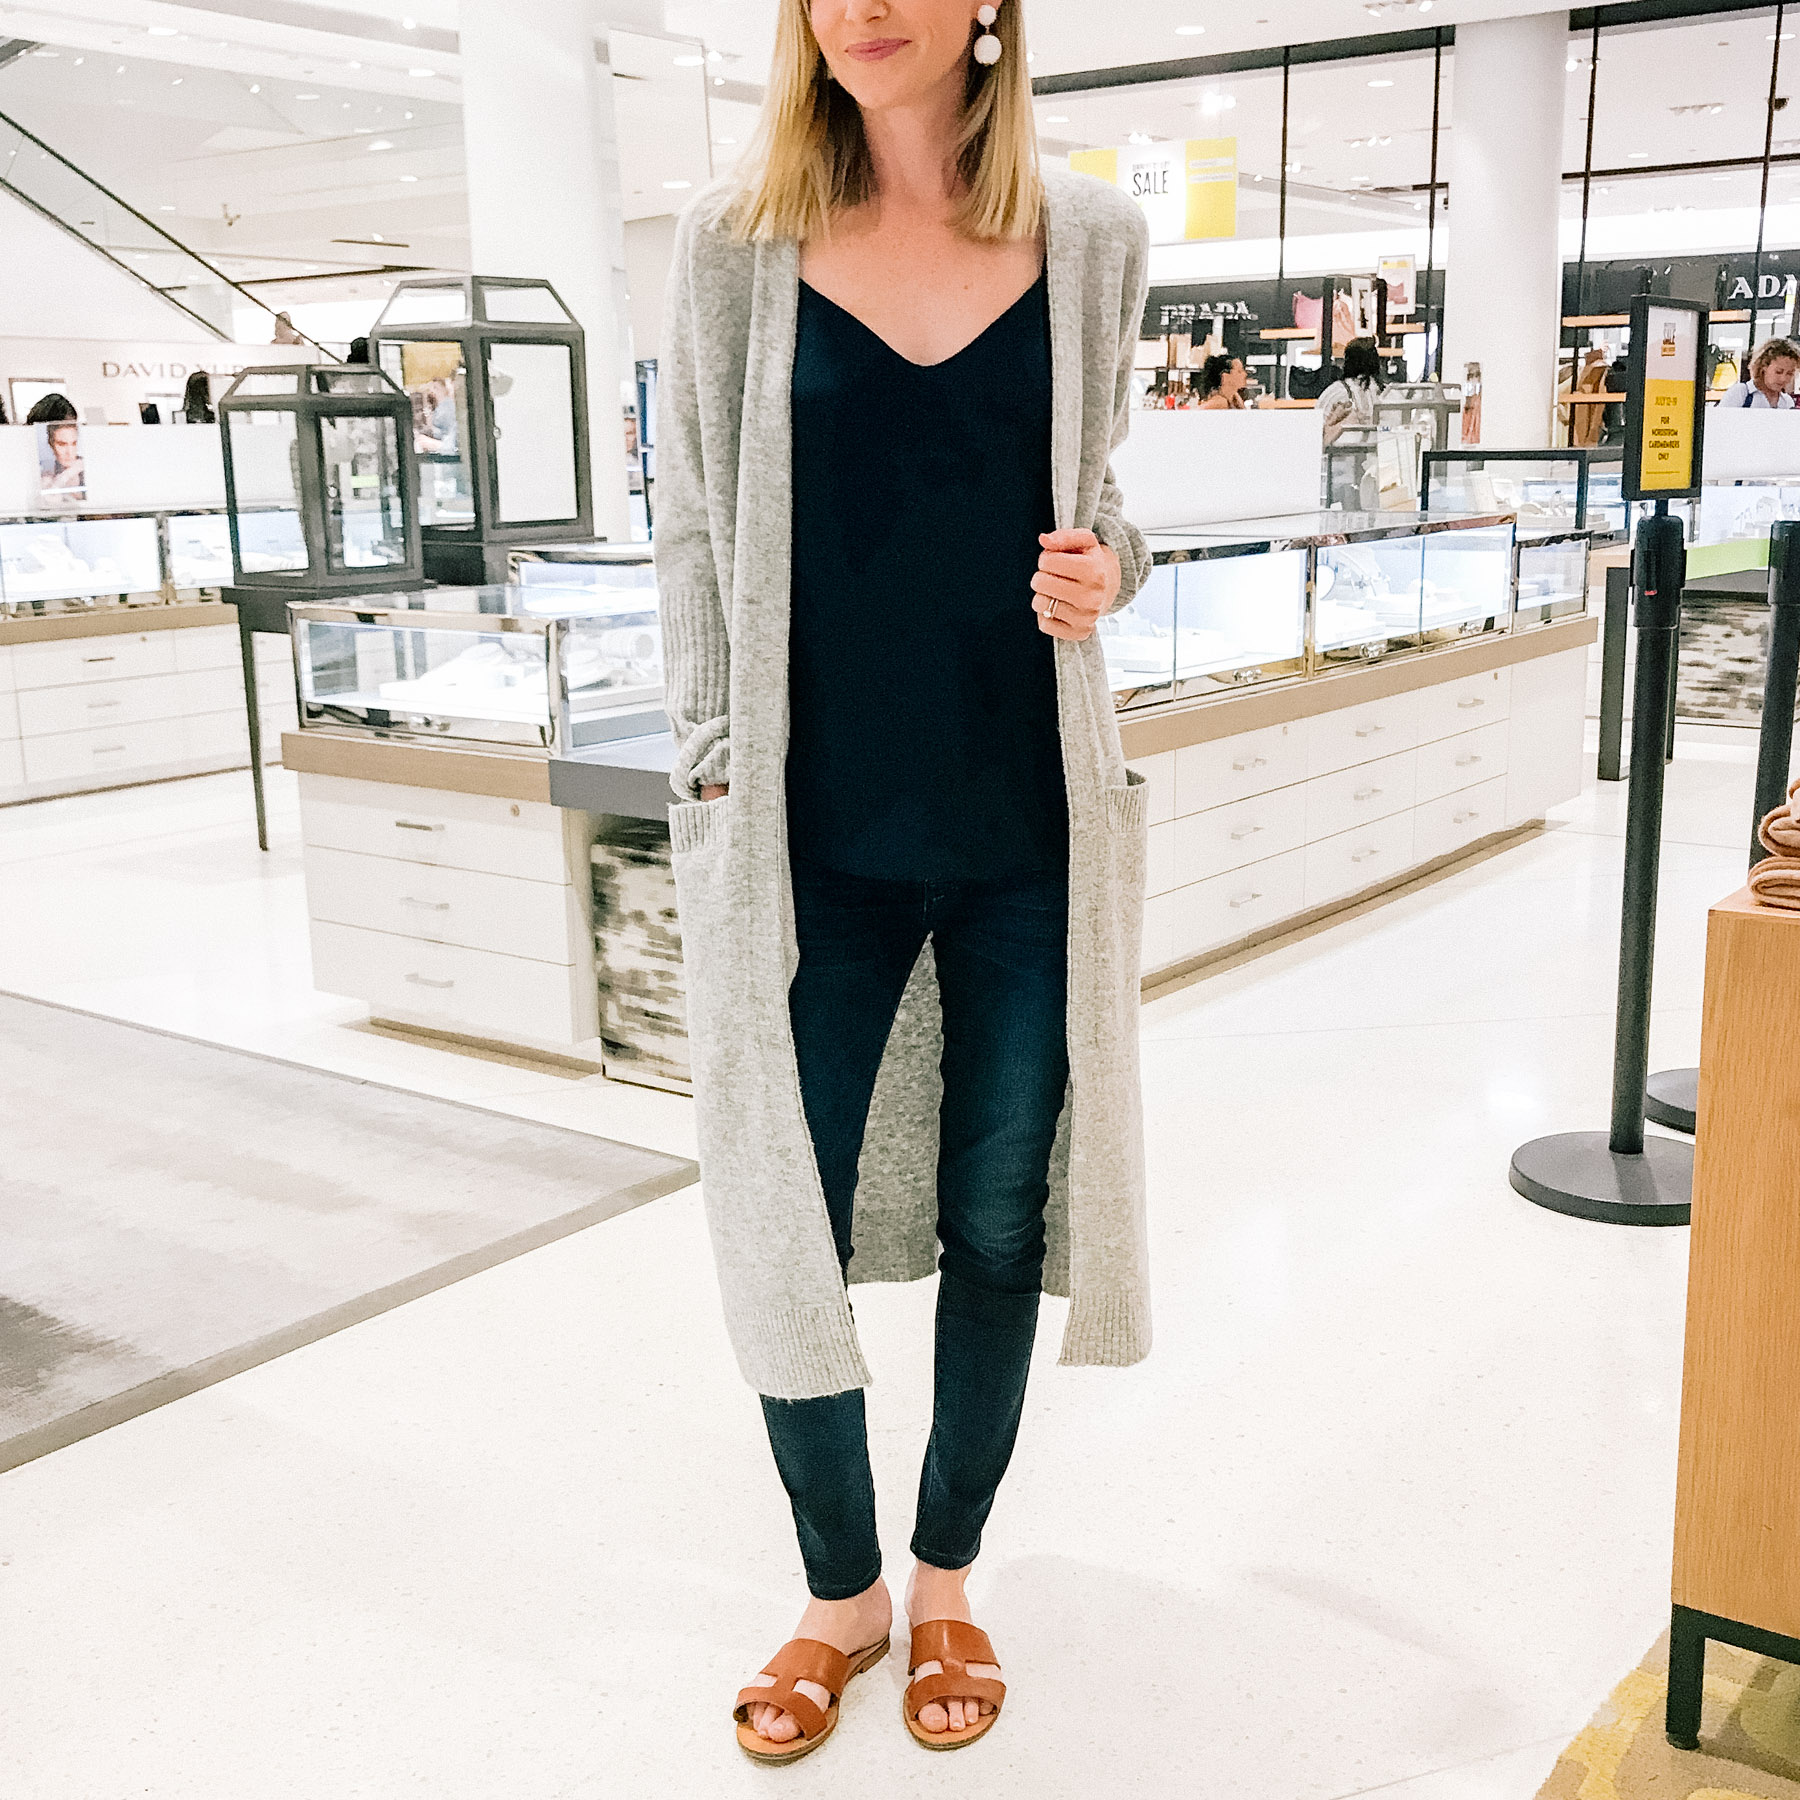 One-Size-Fits-All Duster Cardigan (Only $65.90!) / Hudson Skinny Jeans (But these Rag & Bone Skinny Jeans are VERY similar and part of the sale!) / J.Crew Camisole / Everlane Sandals (Here are the best brown sandals that are part of the sale, though!) / Tuckernuck Earrings